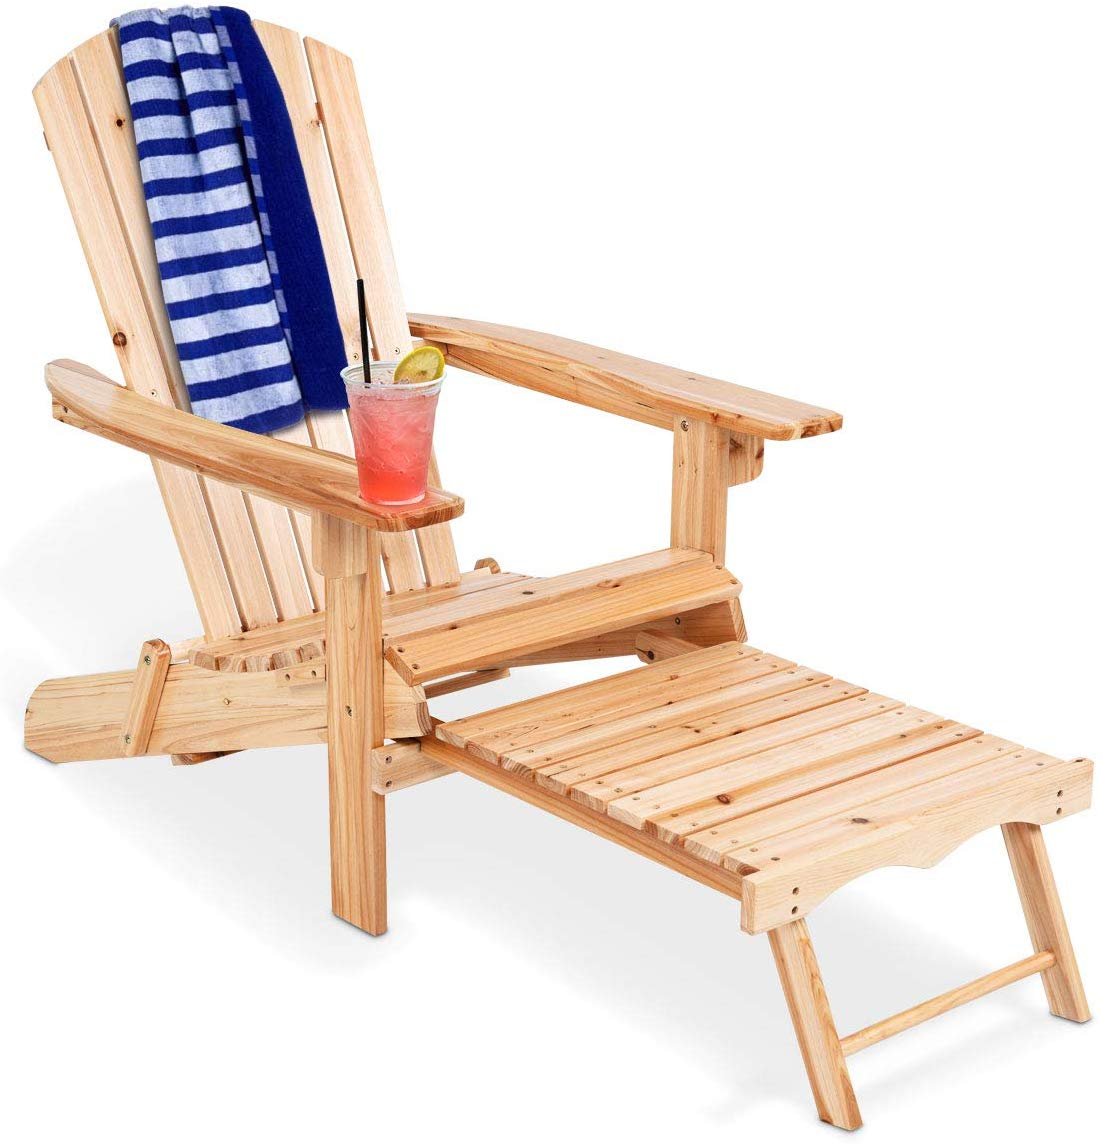 Giantex Adirondack Chair Foldable with Pull-Out Footrest, Outdoor Modern of 100% Solid Wood for Patio Decor Lawn Garden Porch Balcony, Large Wooden Folding Adirondack Chairs